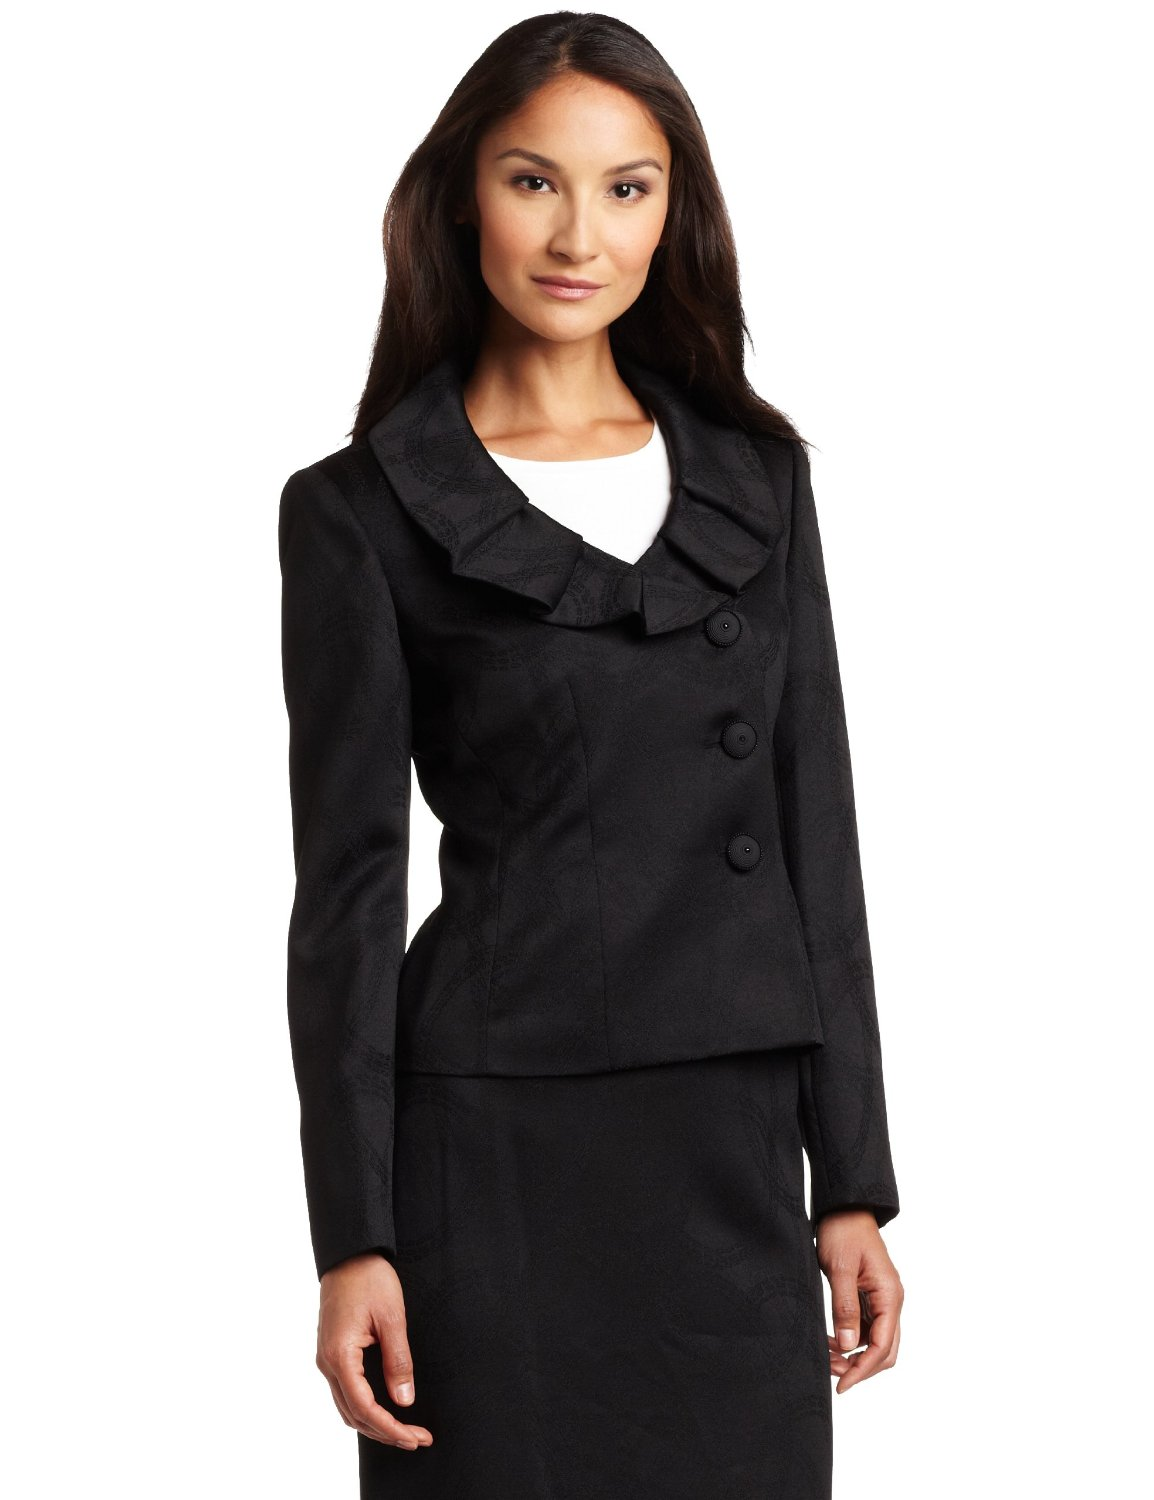 We also have Ladies Business Suits and Wardrober Ensembles, which can help make the most out of your existing collection by giving you the flexibility to mix and match the Skirt Suit Seperates! And we are more than just Skirts! We have Business Pantsuits, Formal Pantsuits, Church Pantsuits, Classy Pantsuits, you name it, we have a Pantsuit Style that will meet your needs!